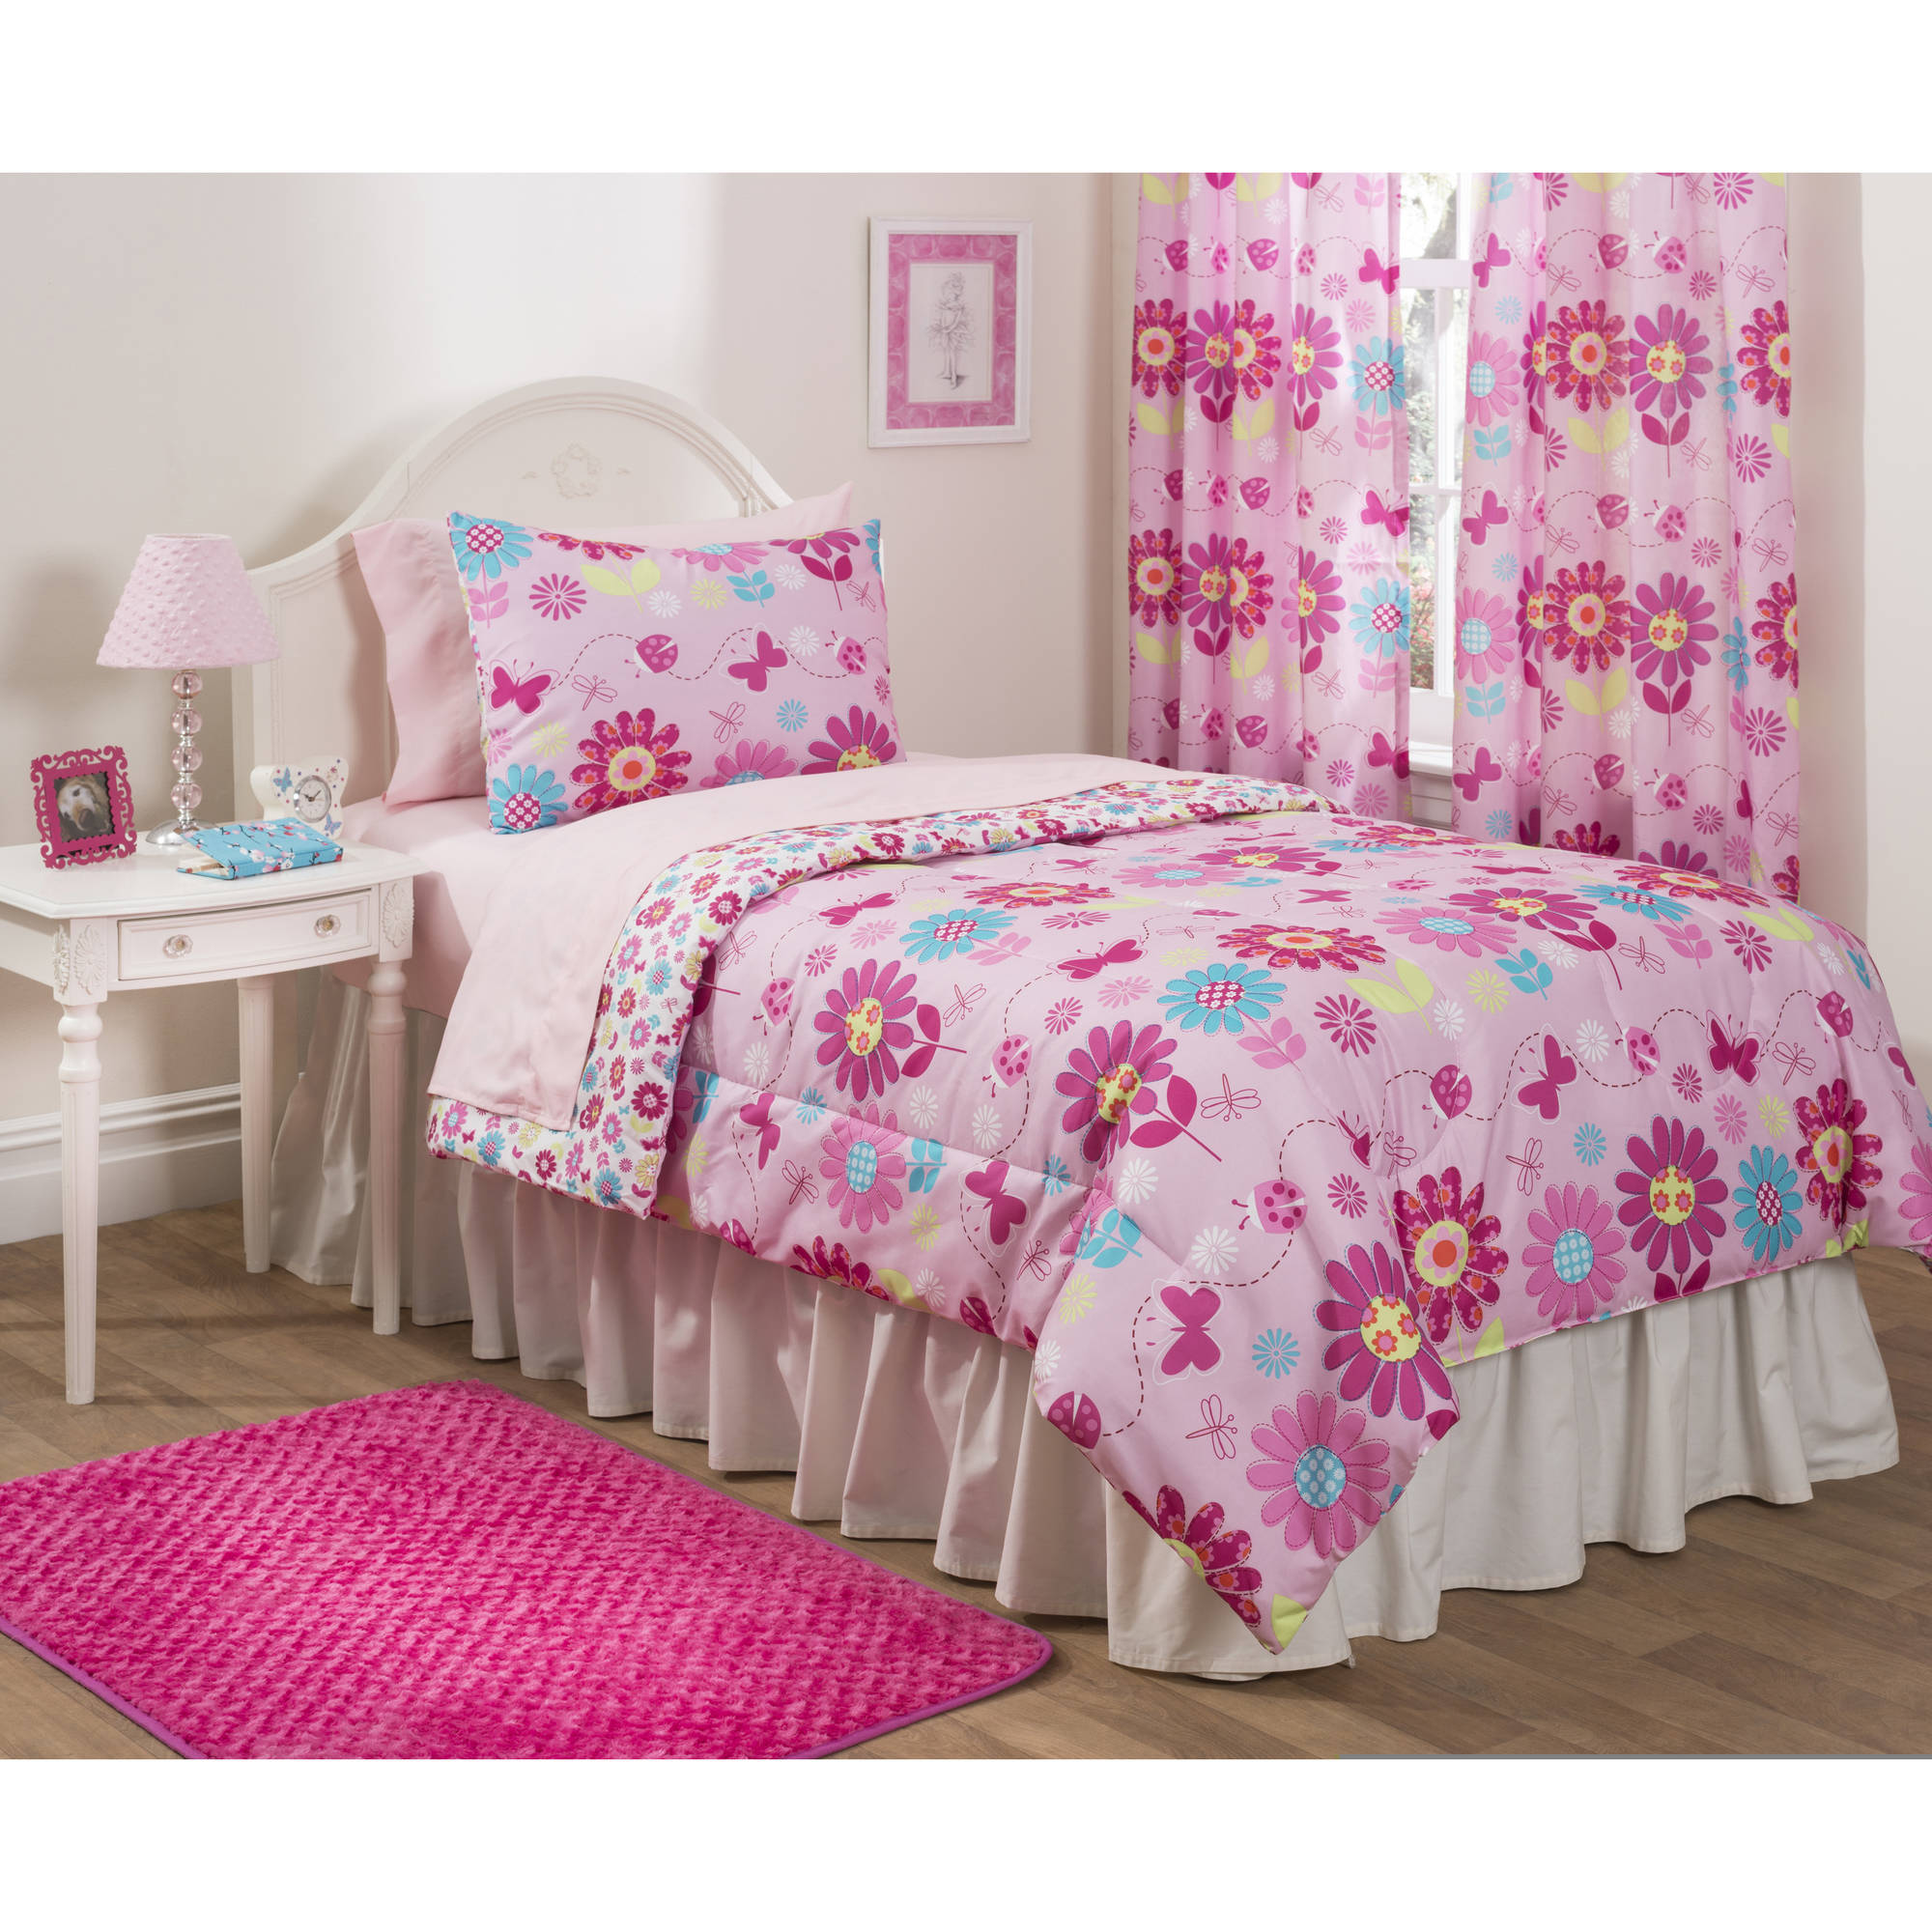 Mainstays Daisy Floral Girls Bedroom Curtains, Set of two by Idea Nuova